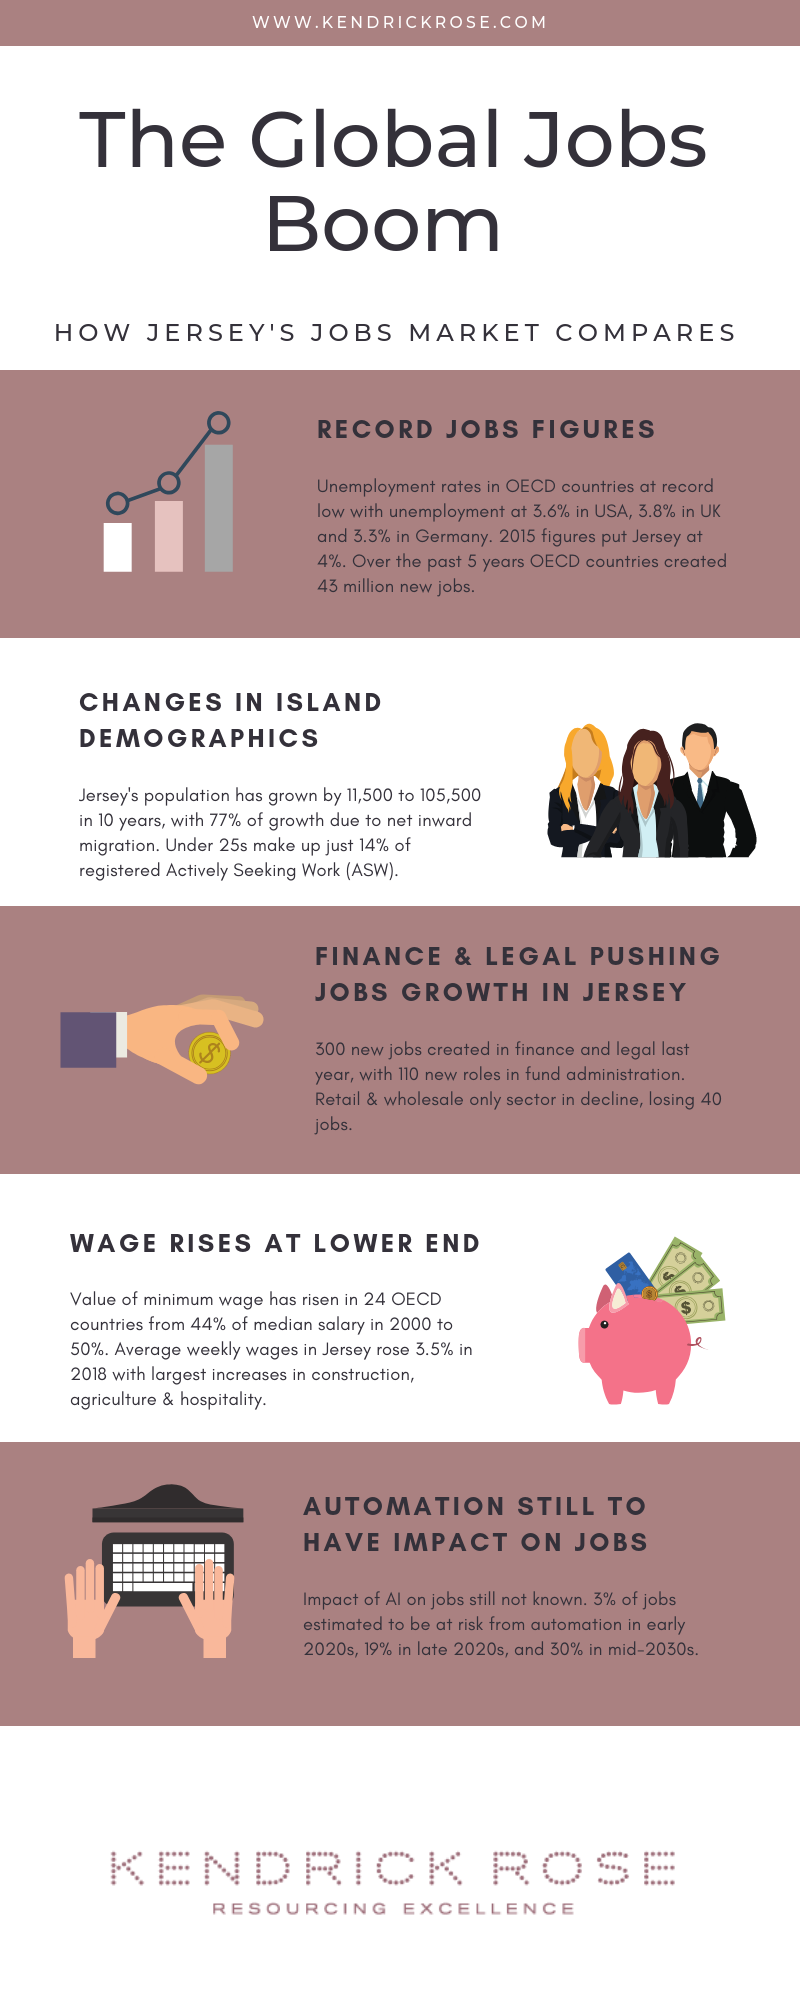 The Global Jobs Boom Infographic